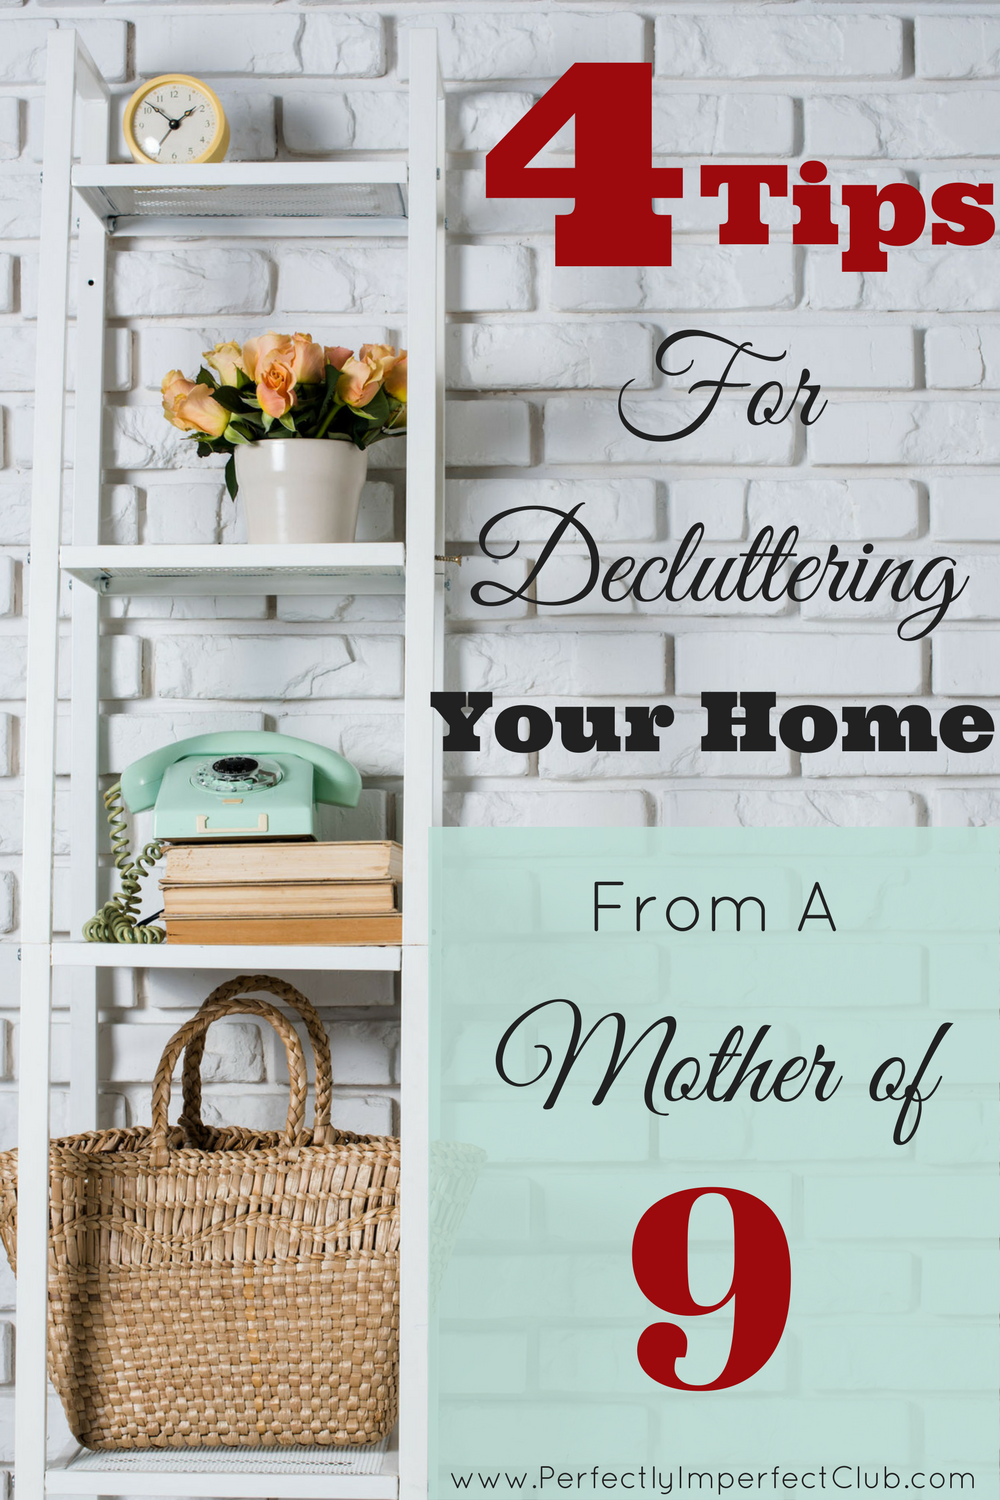 Decluttering tips from a mother of 9 that really work!|Large Family|Decluttering